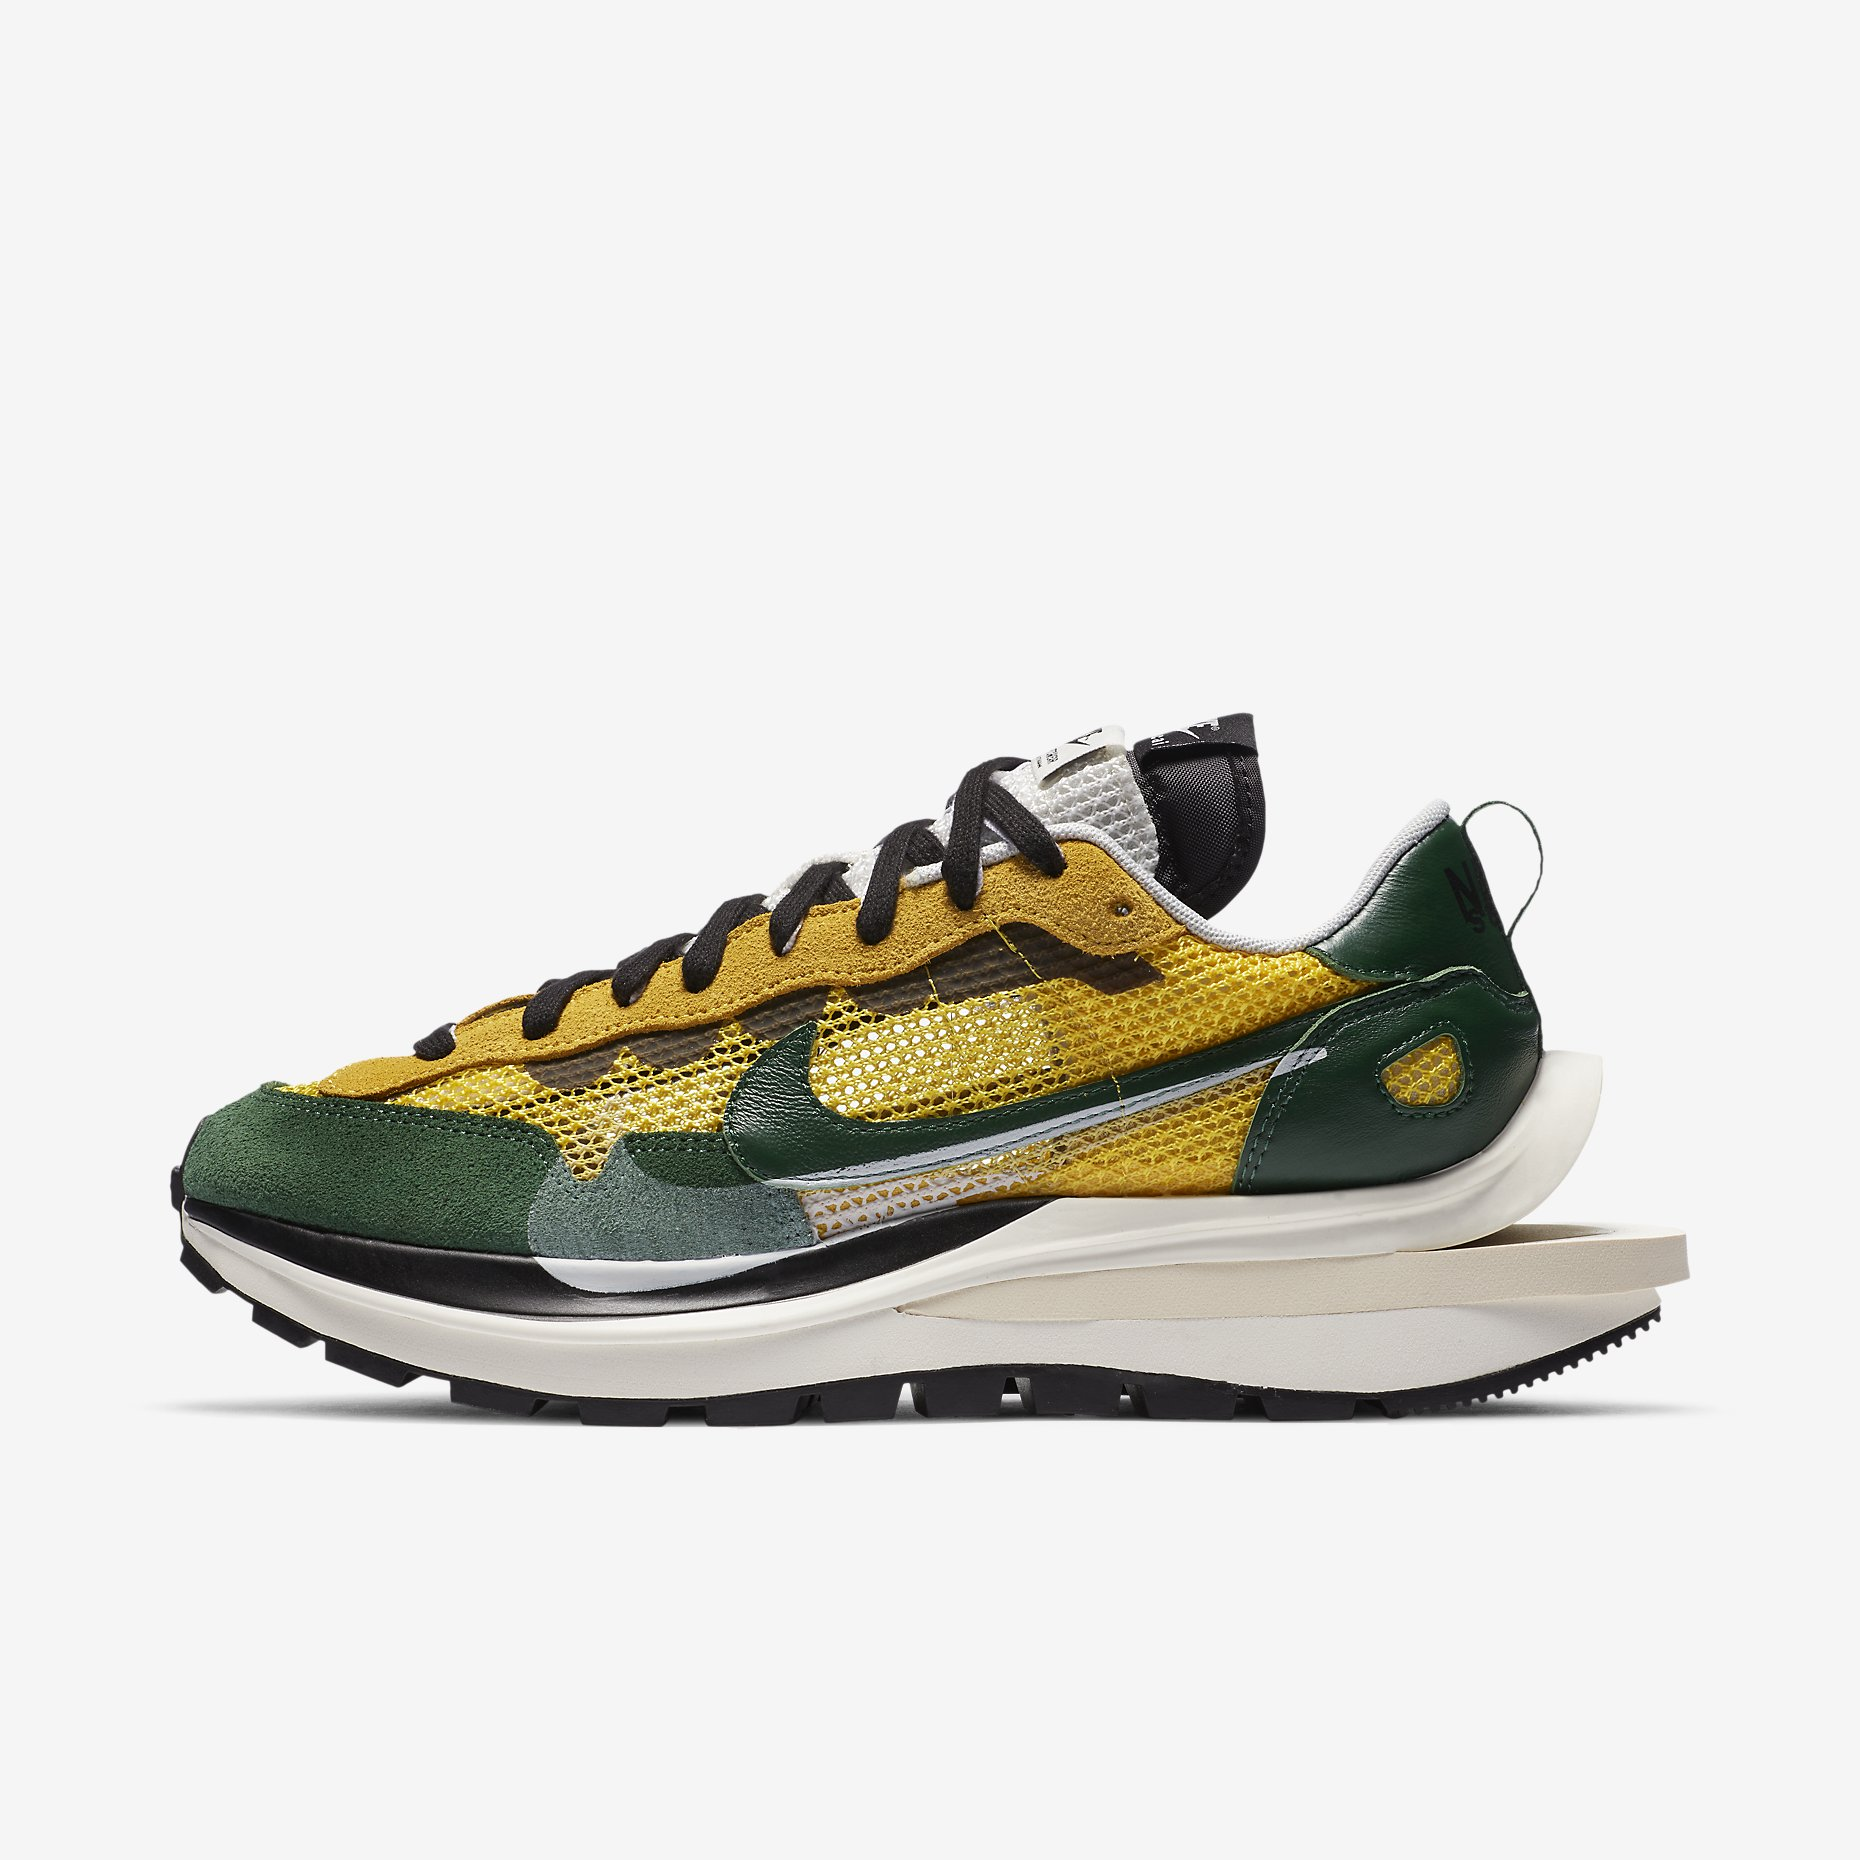 Nike x Sacai VaporWaffle 'Tour Yellow Stadium Green'}